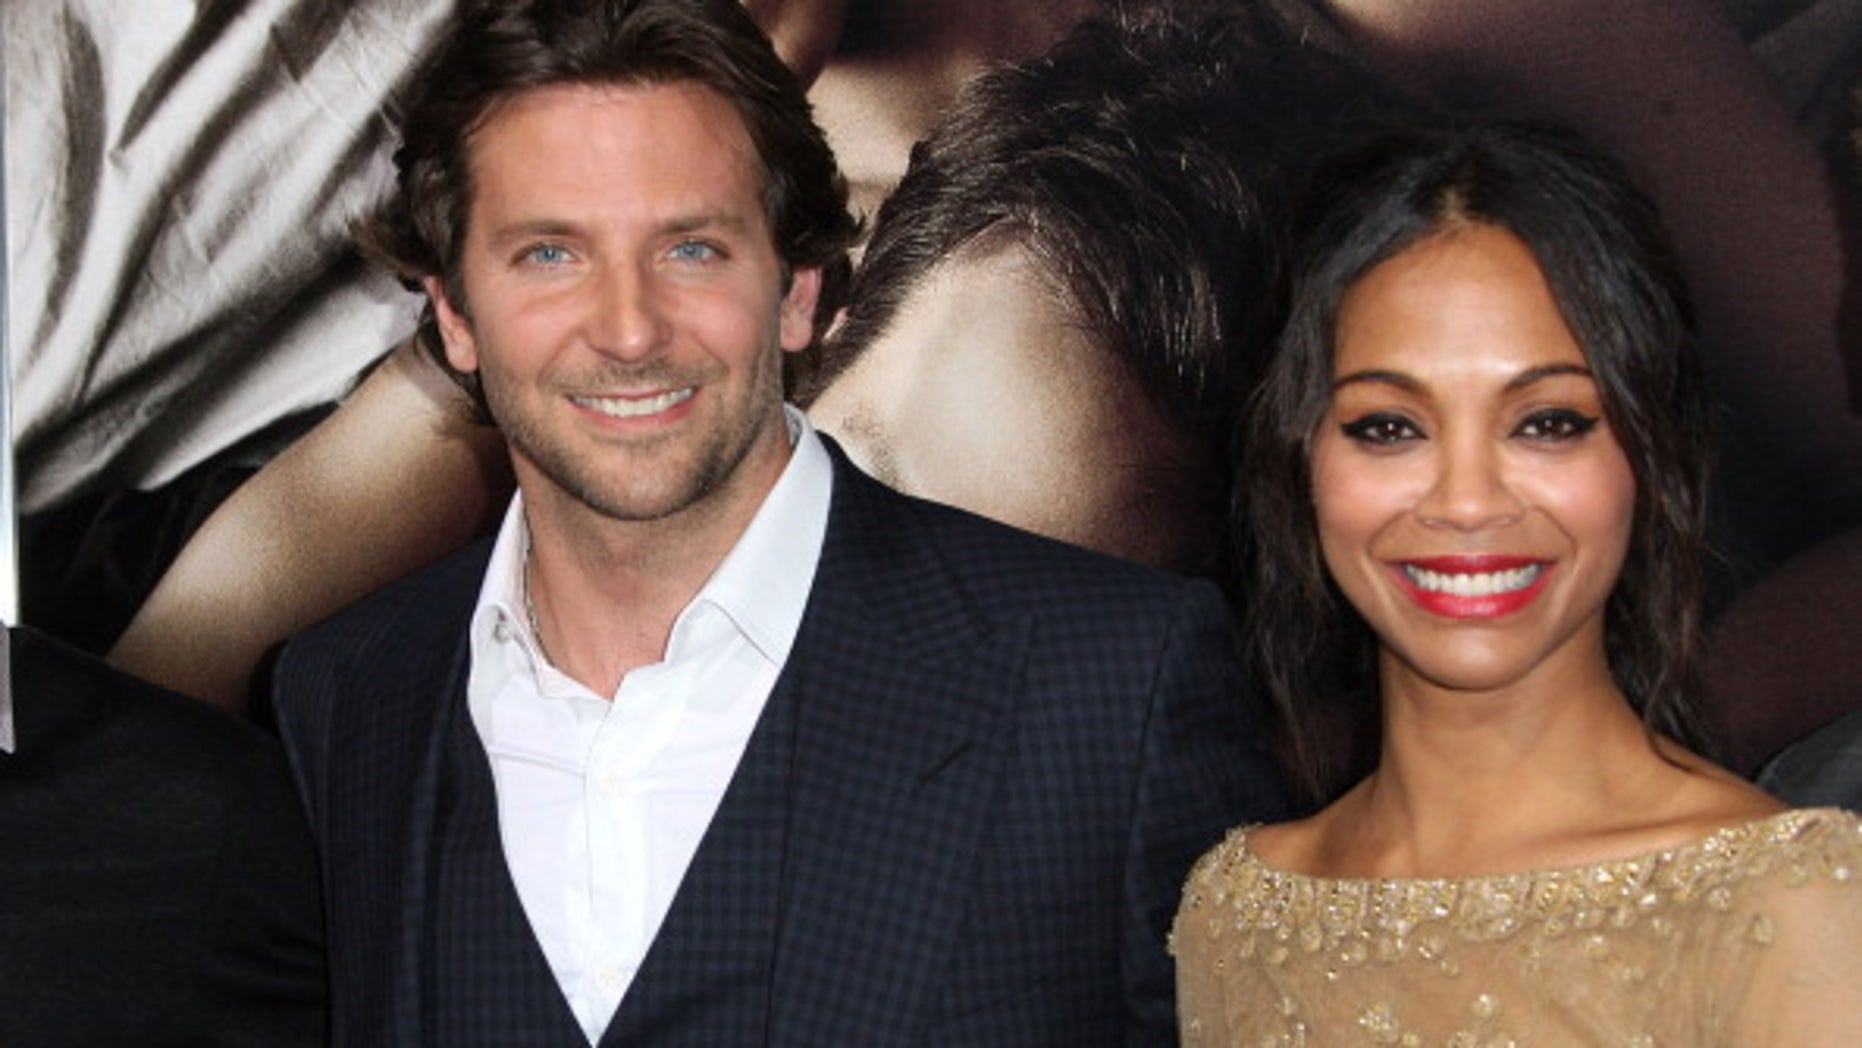 """Actor Bradley Cooper (L) and actress Zoe Saldana attend the premiere of """"The Words"""" at the ArcLight Cinemas in Hollywood, California."""